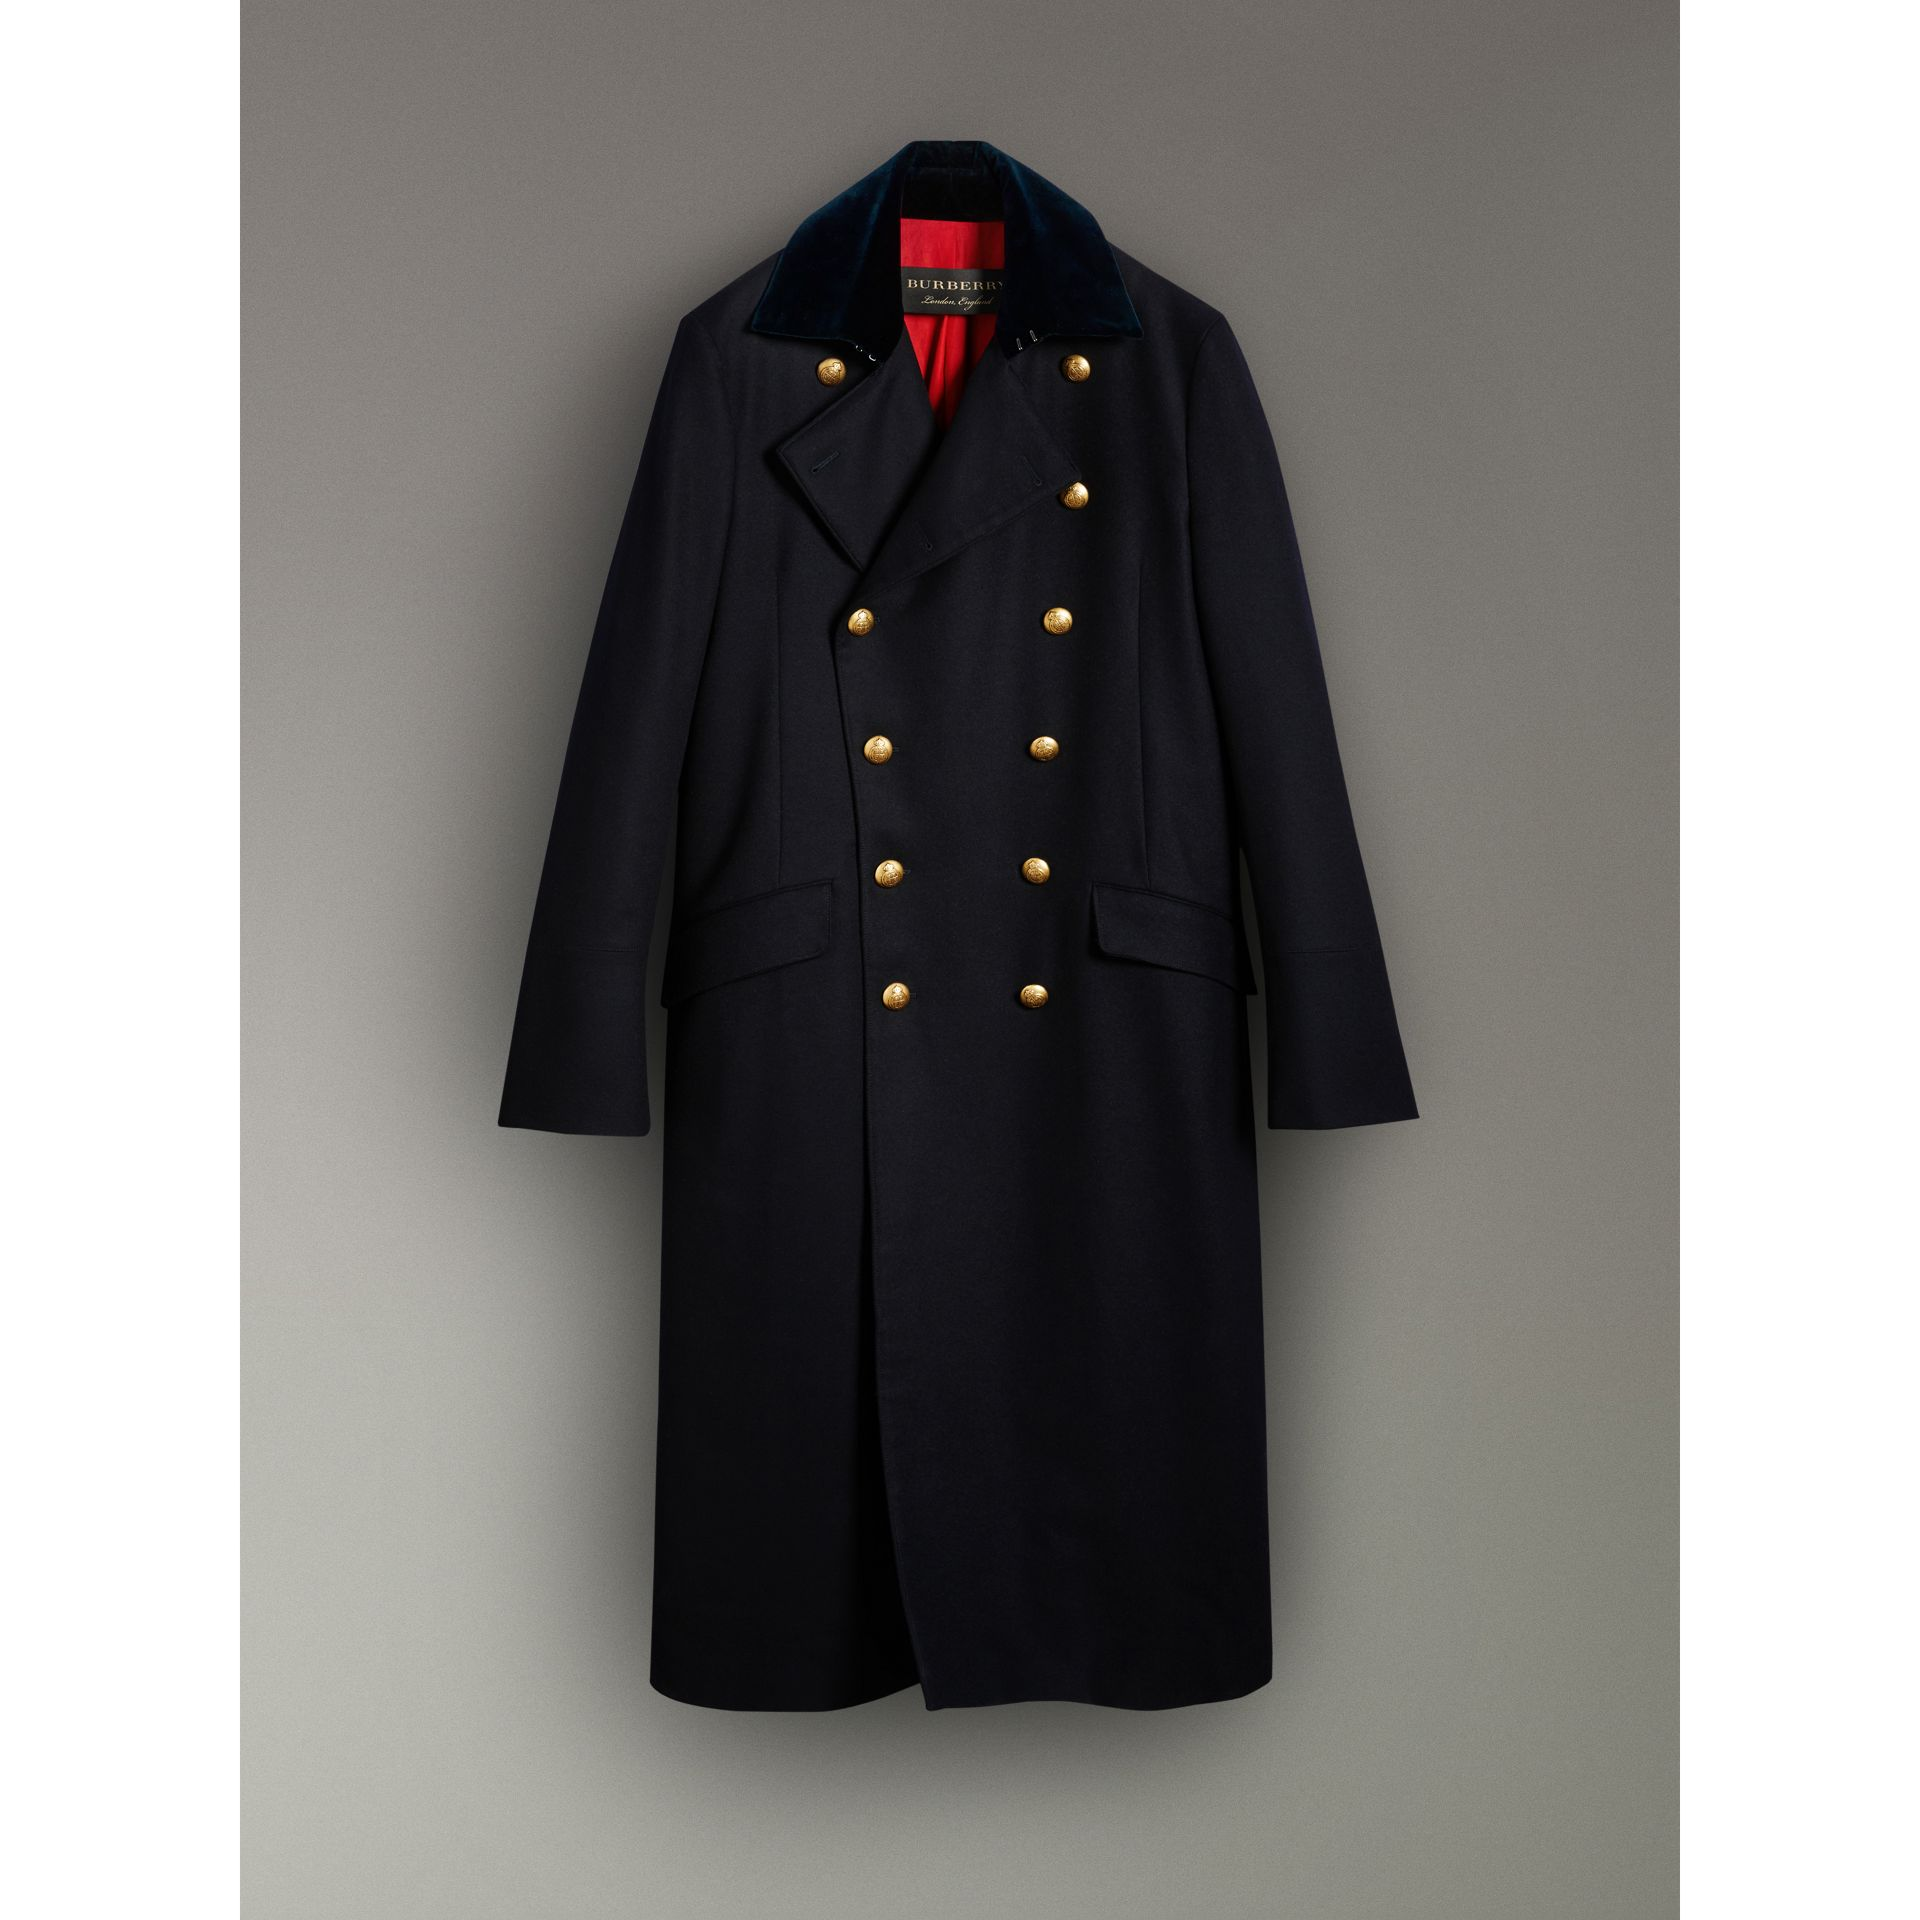 Velvet Collar Doeskin Wool Military Coat in Dark Navy | Burberry United Kingdom - gallery image 3